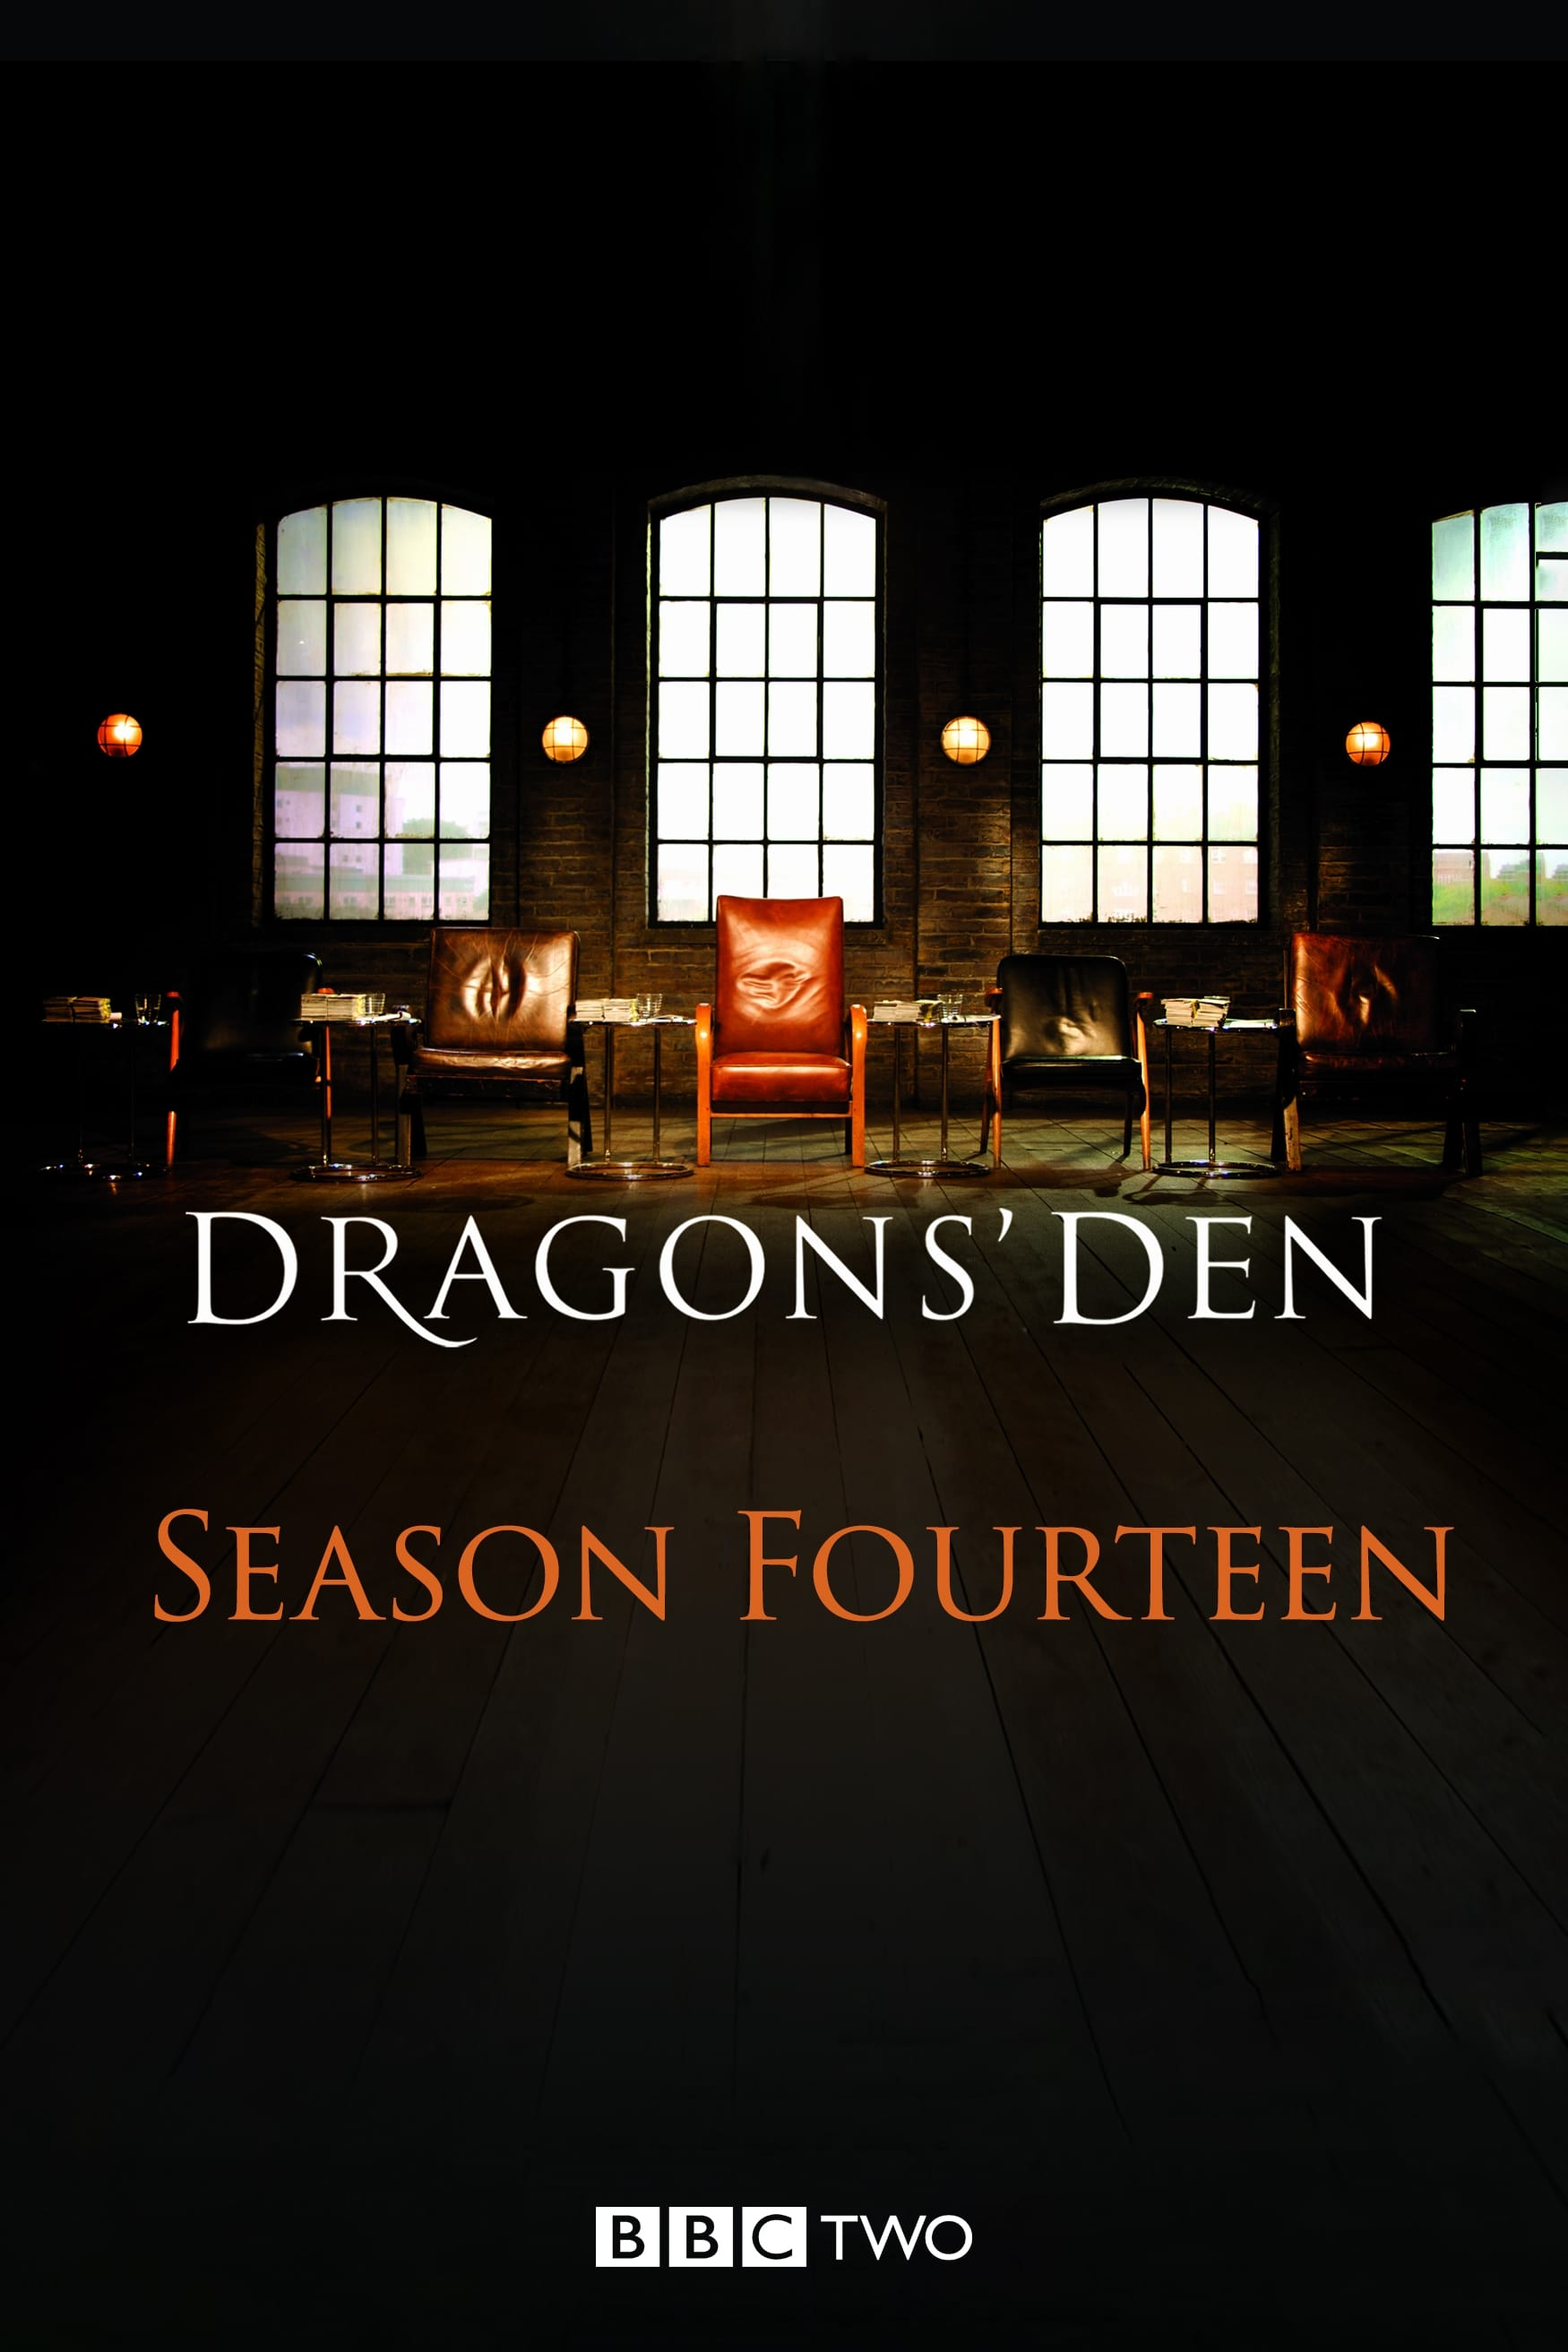 Dragons' Den Season 14